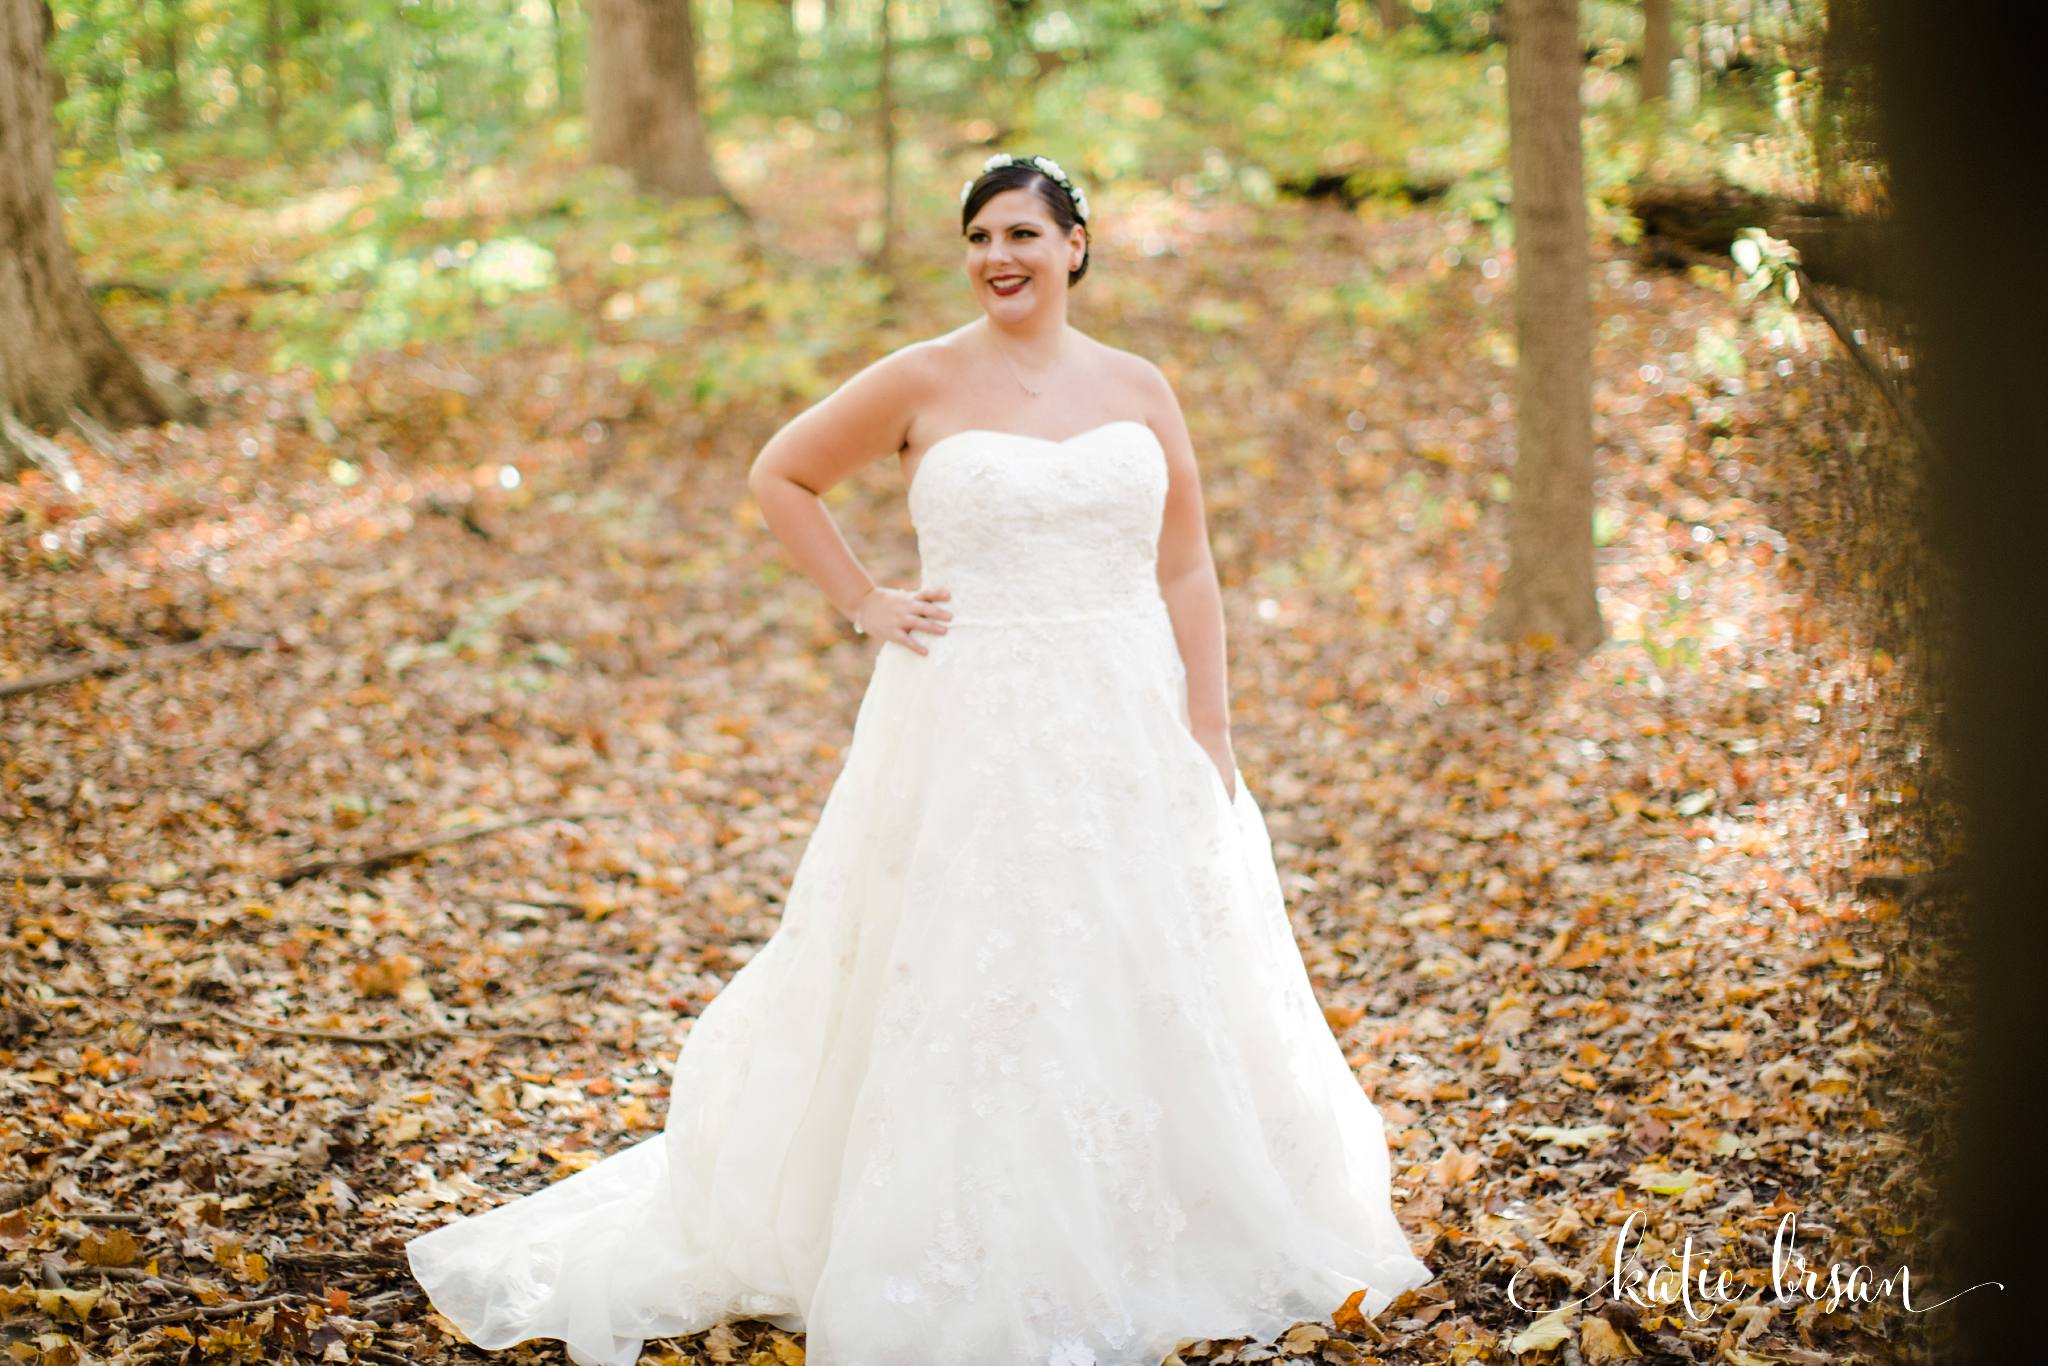 DownersGrove_BackyardWedding_GilbertsPark_1062.jpg